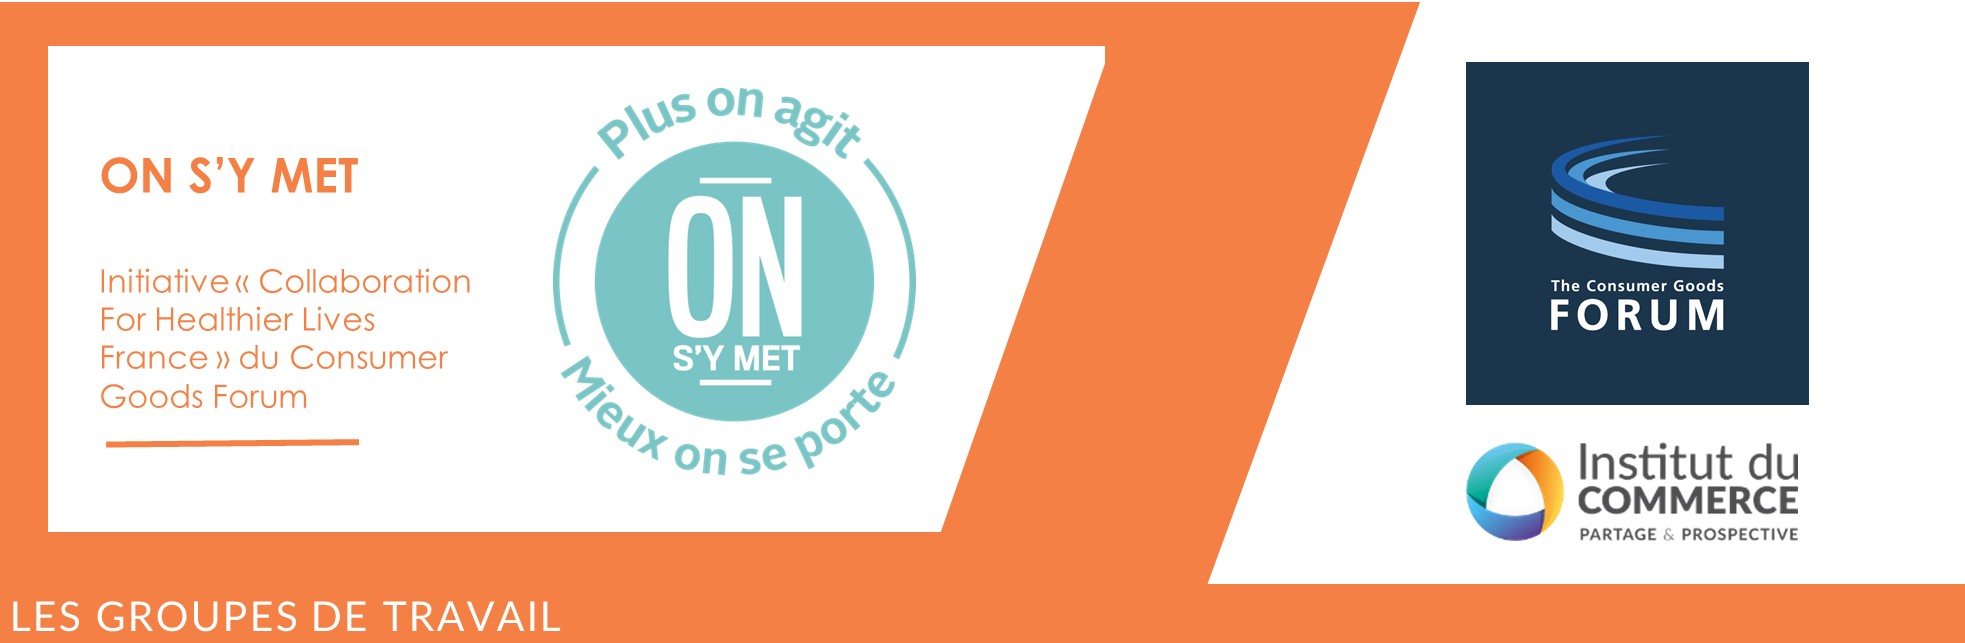 On s'y met : plus on agit, mieux on se porte - Collaboration for Healthier Lives France